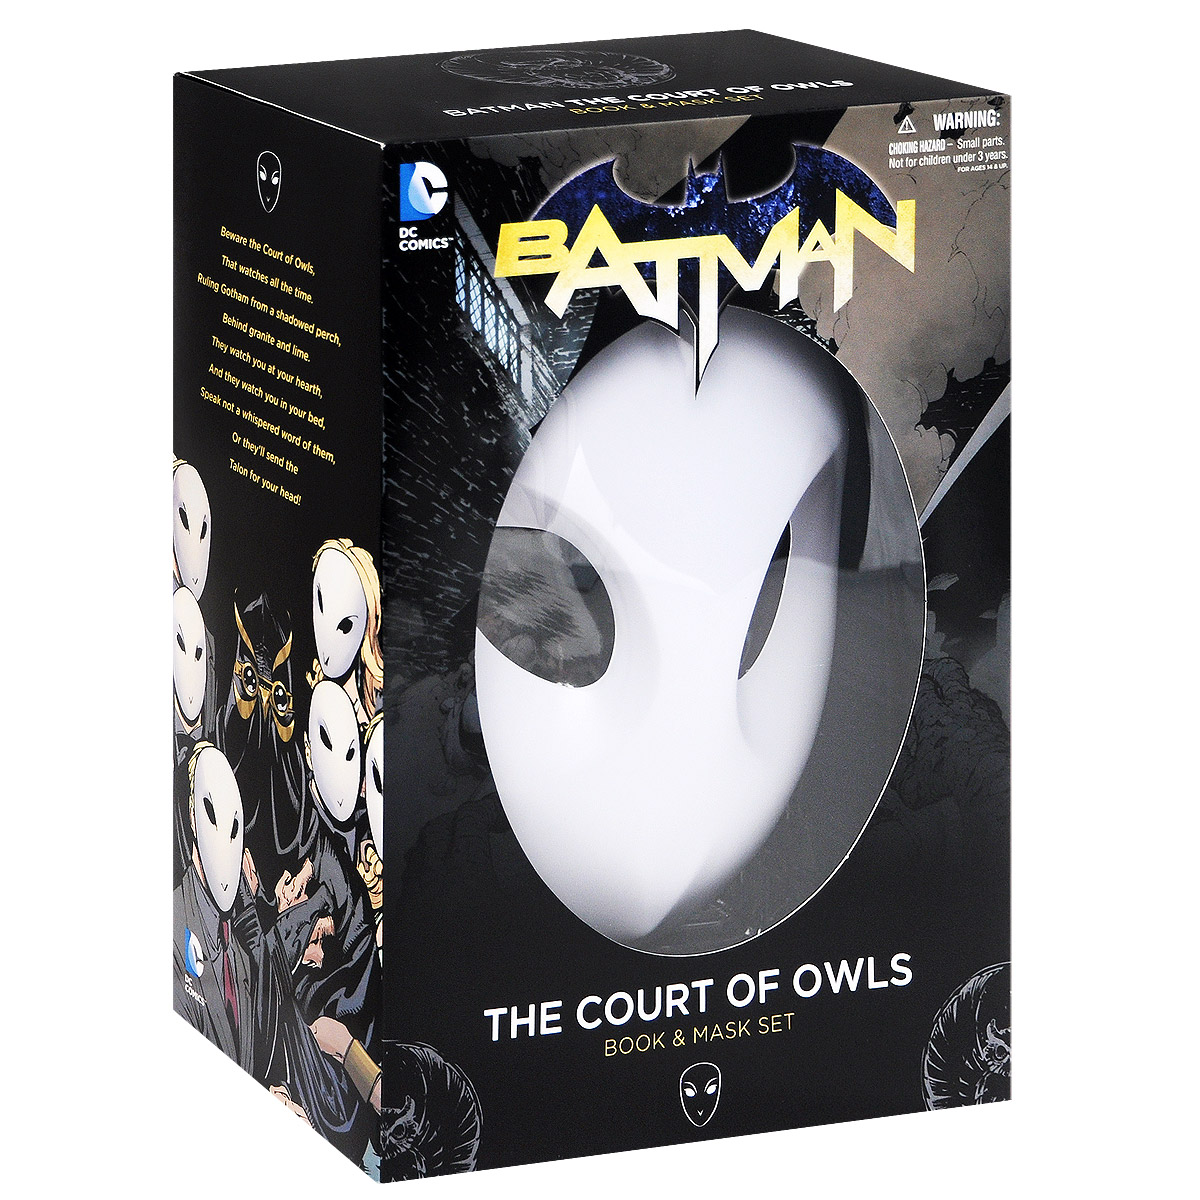 Batman: Volume 1: The Court of Owls (Book and Mask Set) batman volume 1 the court of owls